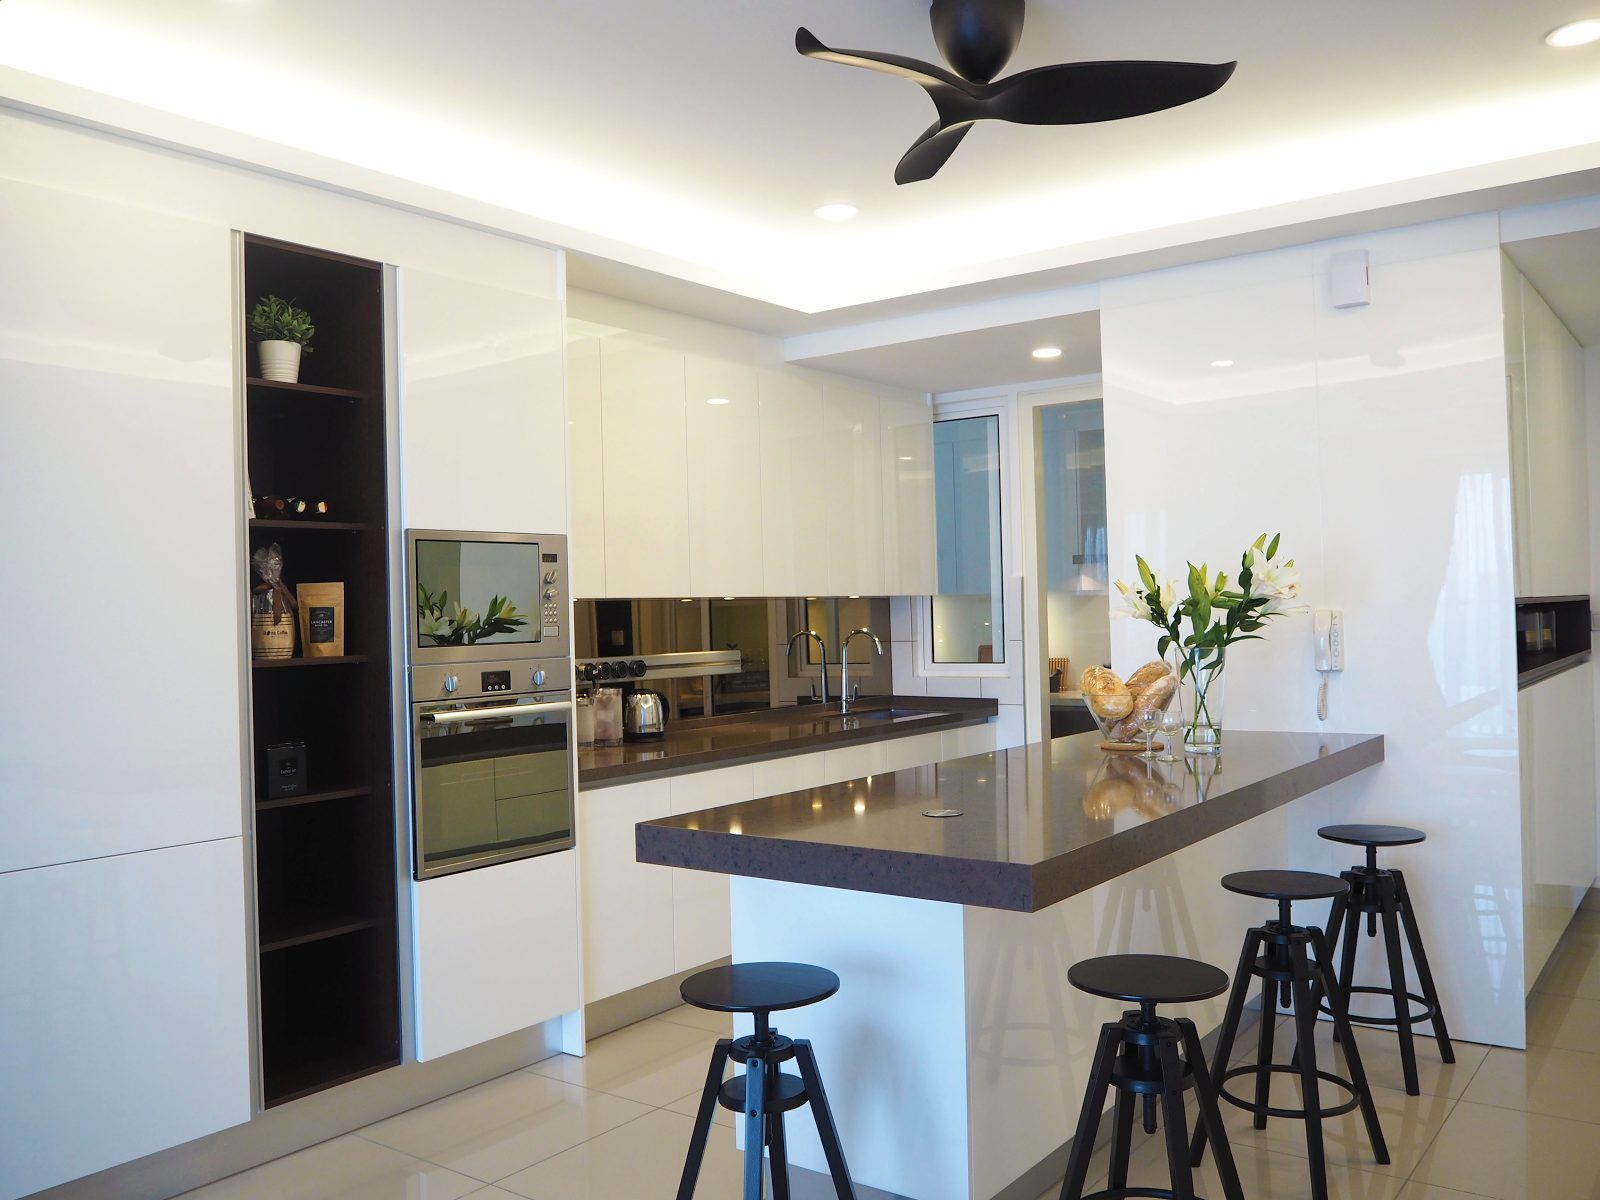 50 malaysian kitchen designs and ideas modern kitchen design kitchen design small white kitchens on interior design kitchen small modern id=37865